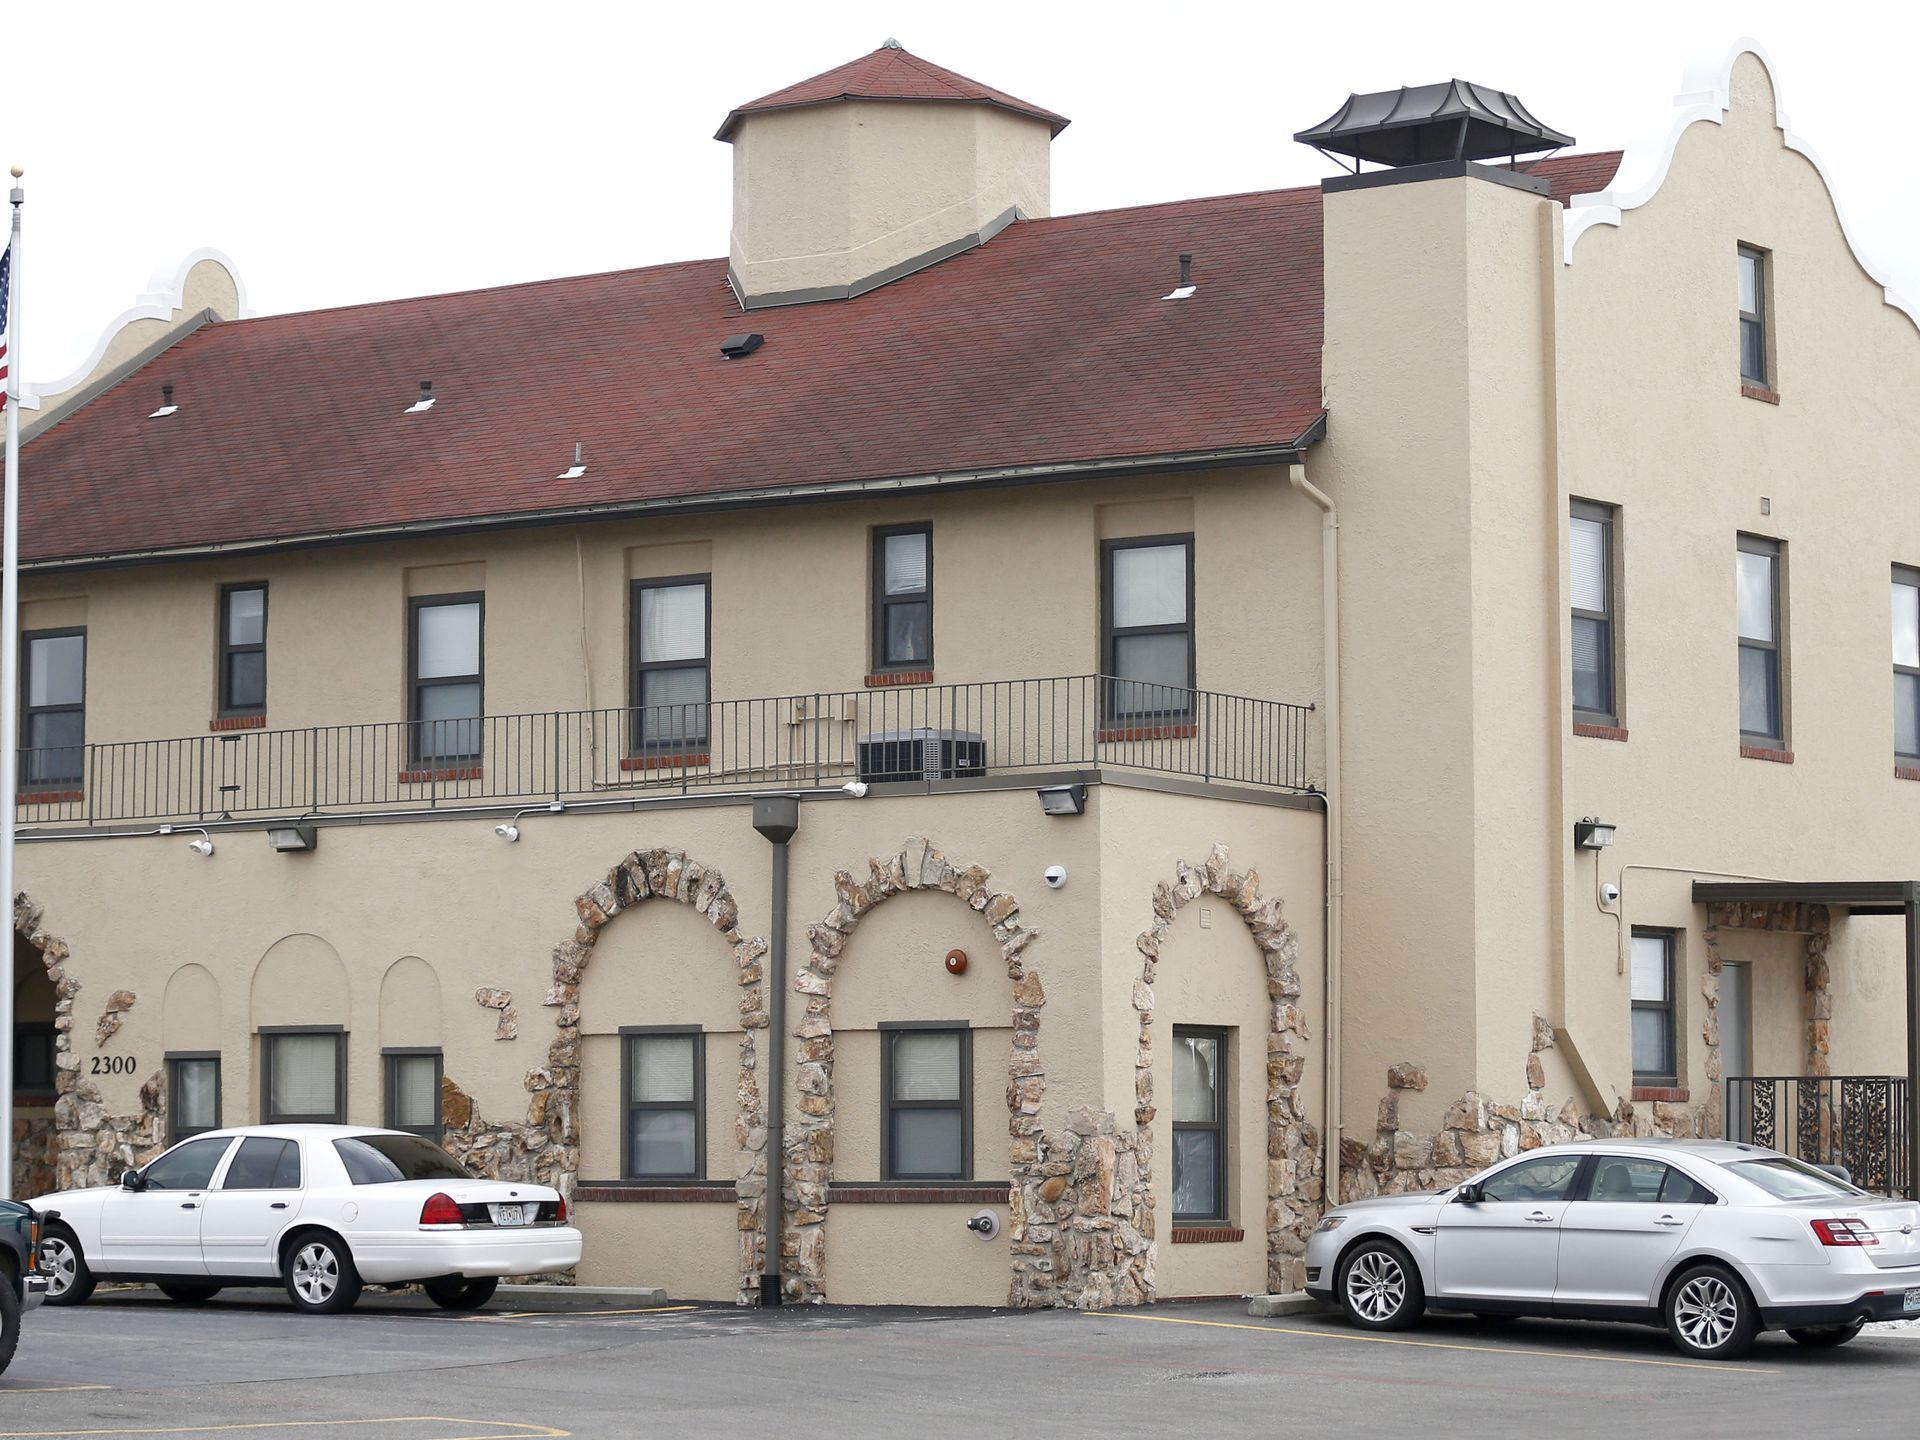 2300 E Division St A Former Airport Building Is Now A Federal Halfway House Springfield Mo Papes News Leader Halfway House Springfield Historical Sites